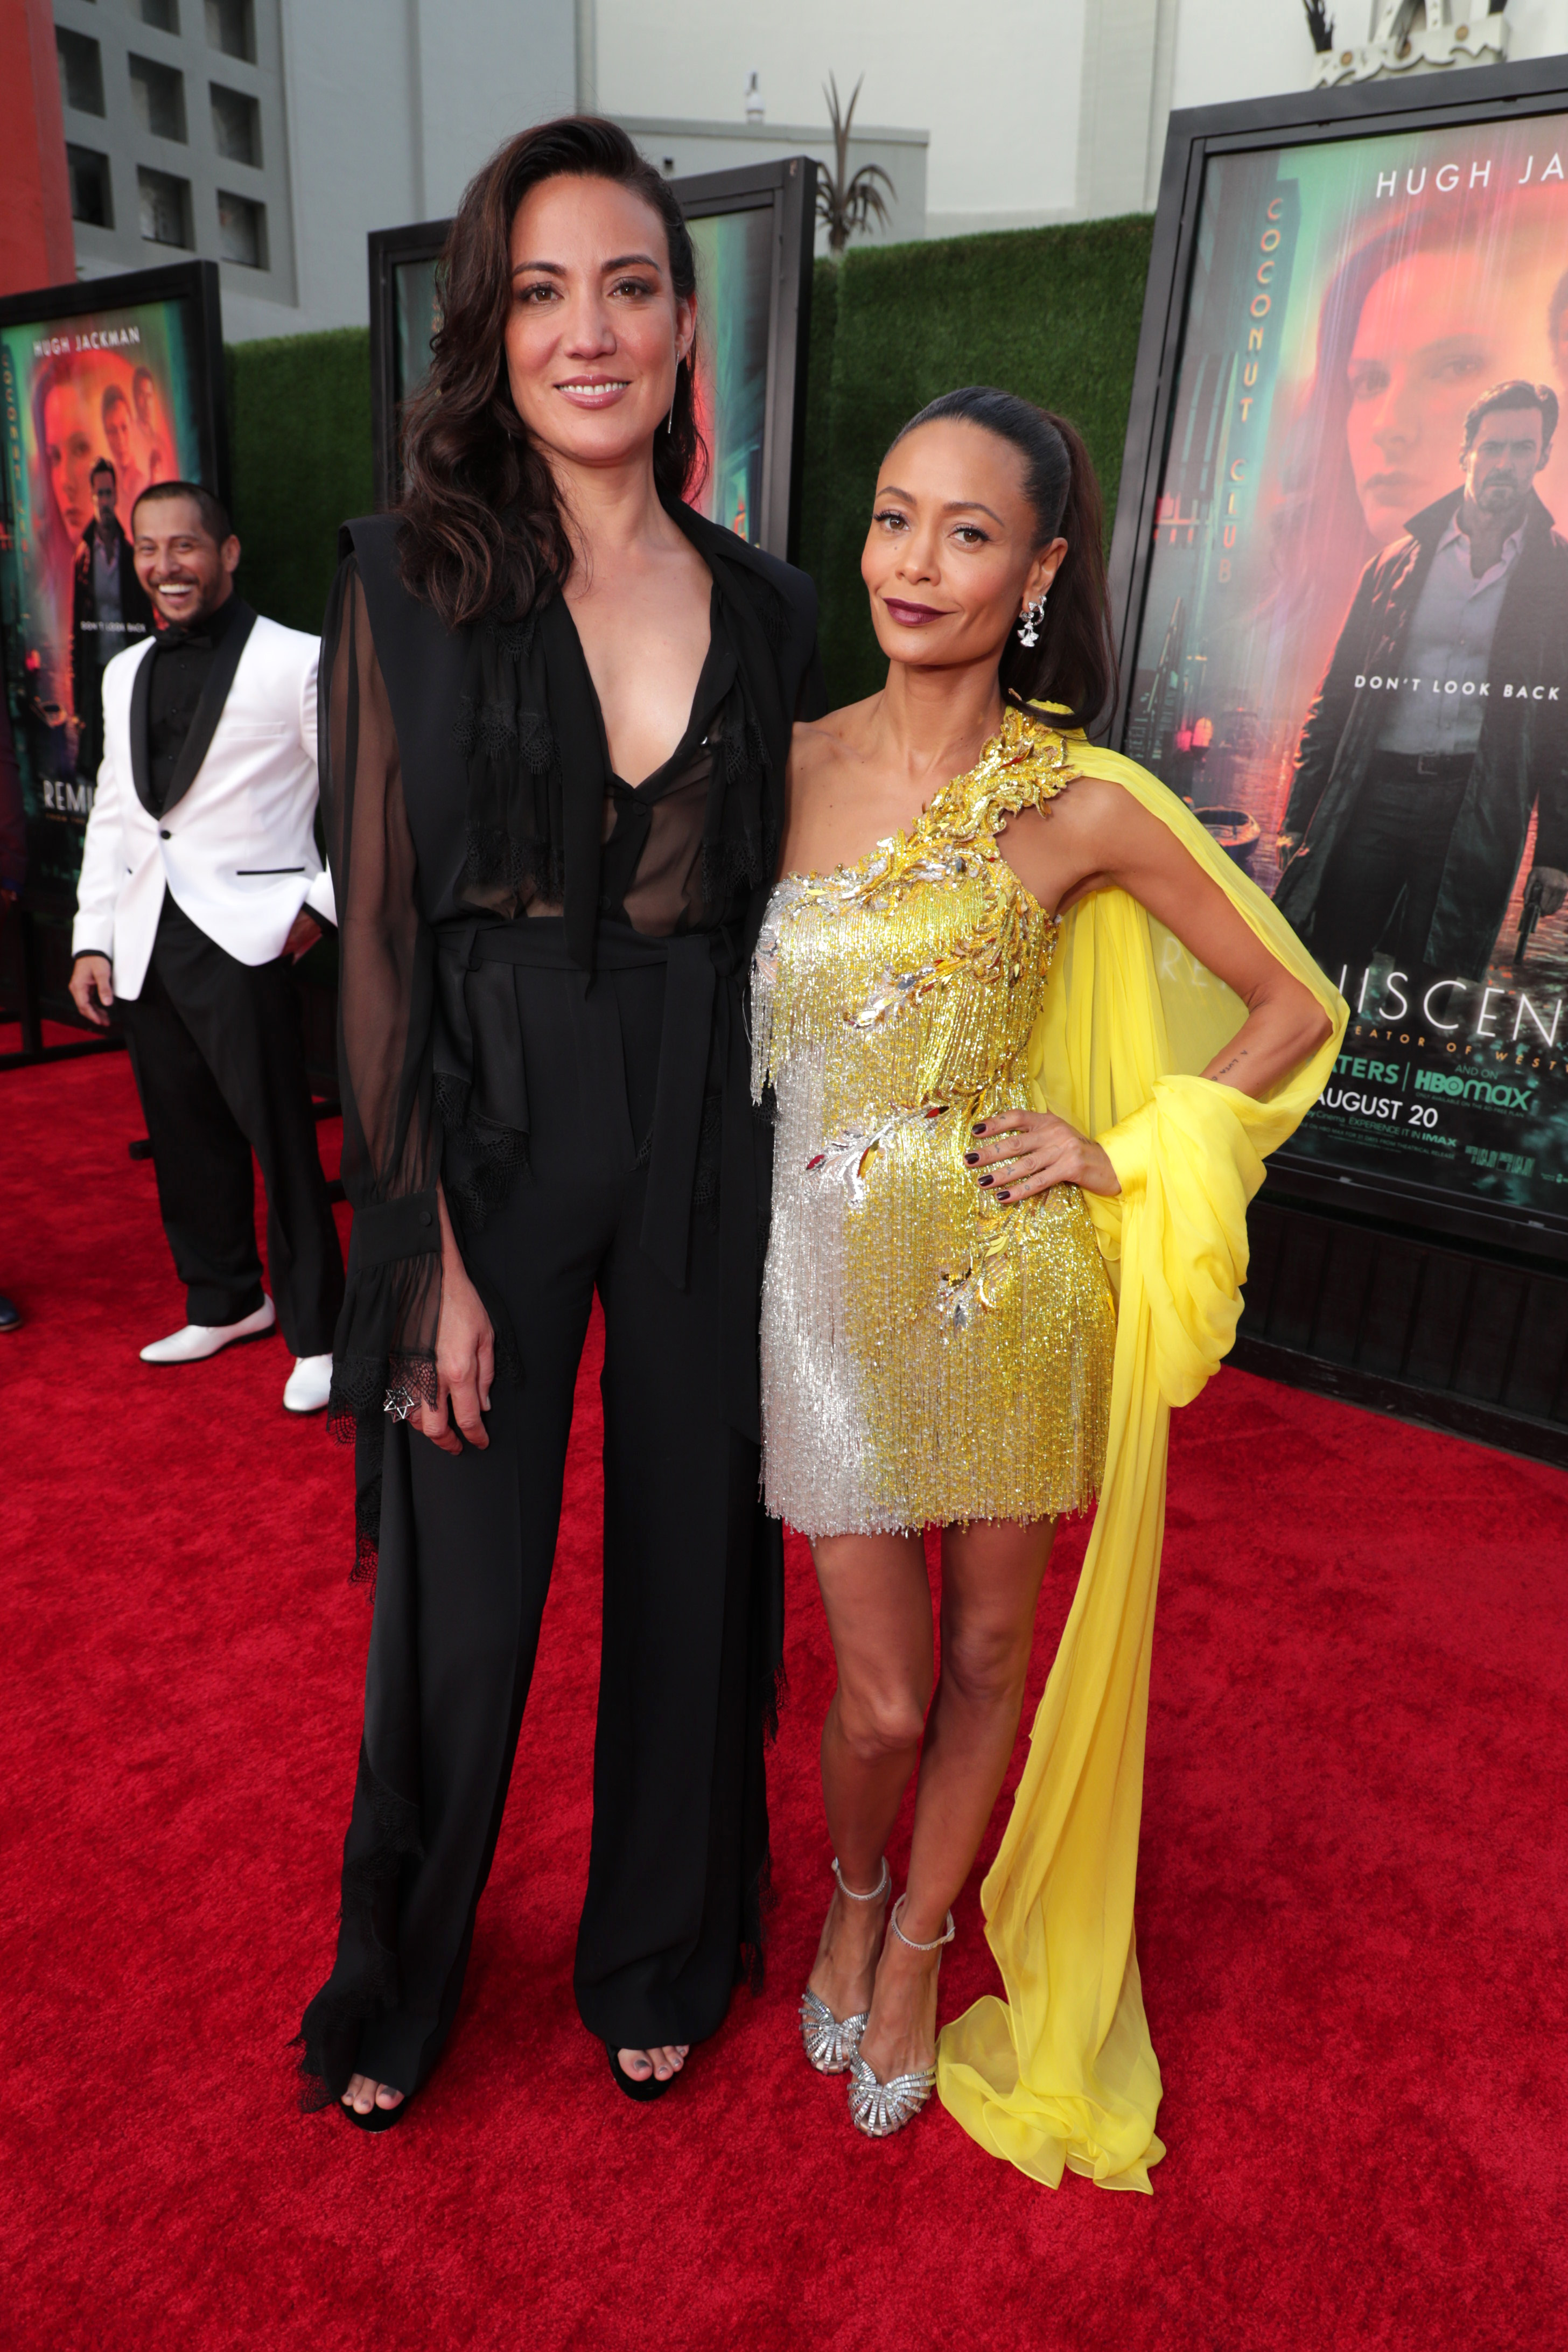 Director Lisa Joy and actress Thandiwe Newton attend the LA premiere of Reminiscence on August 19.